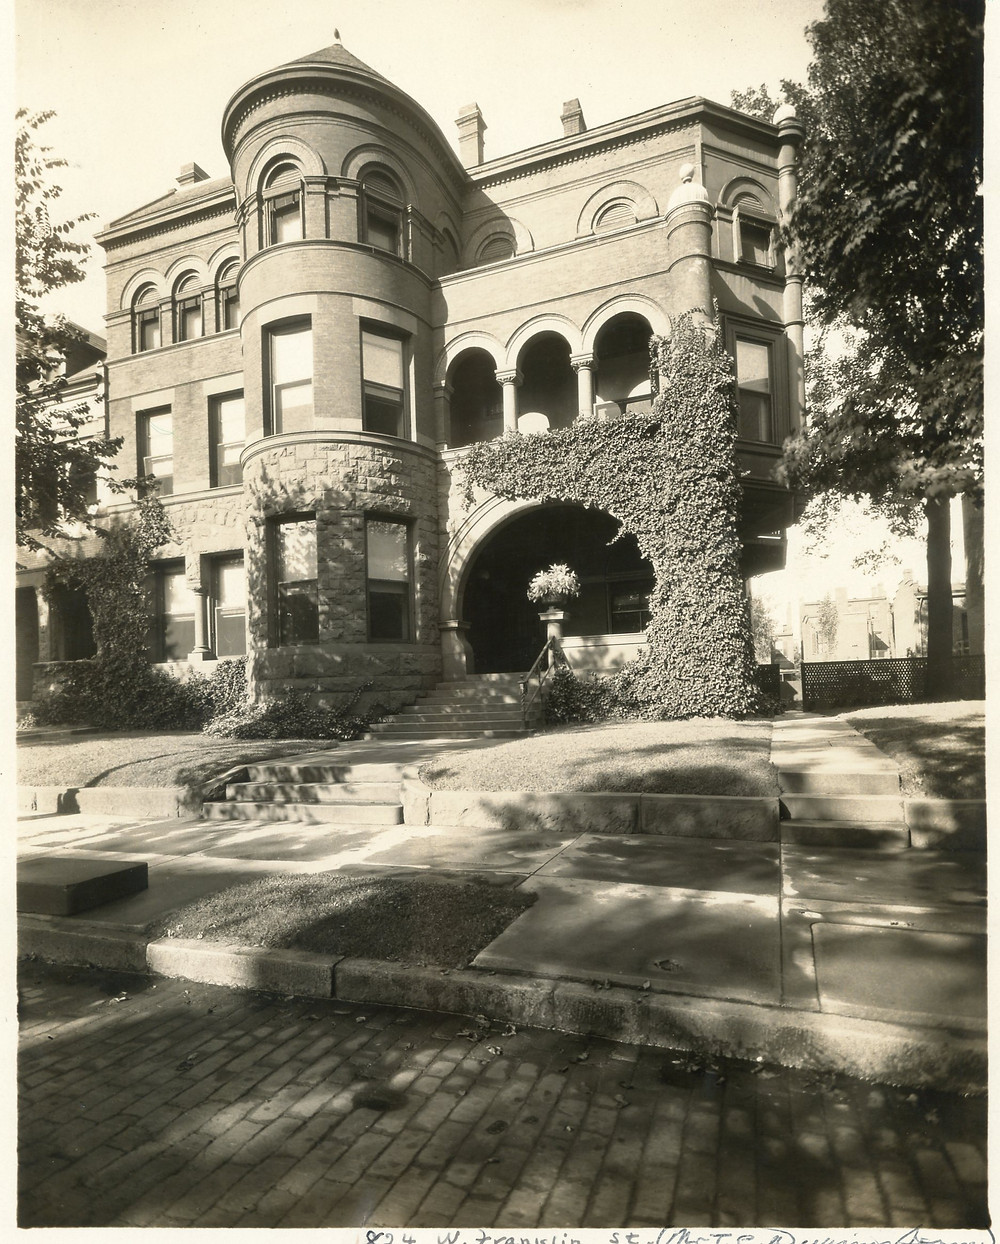 Black and white photograph of a three story masonry house with elaborate arches and ivy coverig part of the entrance.